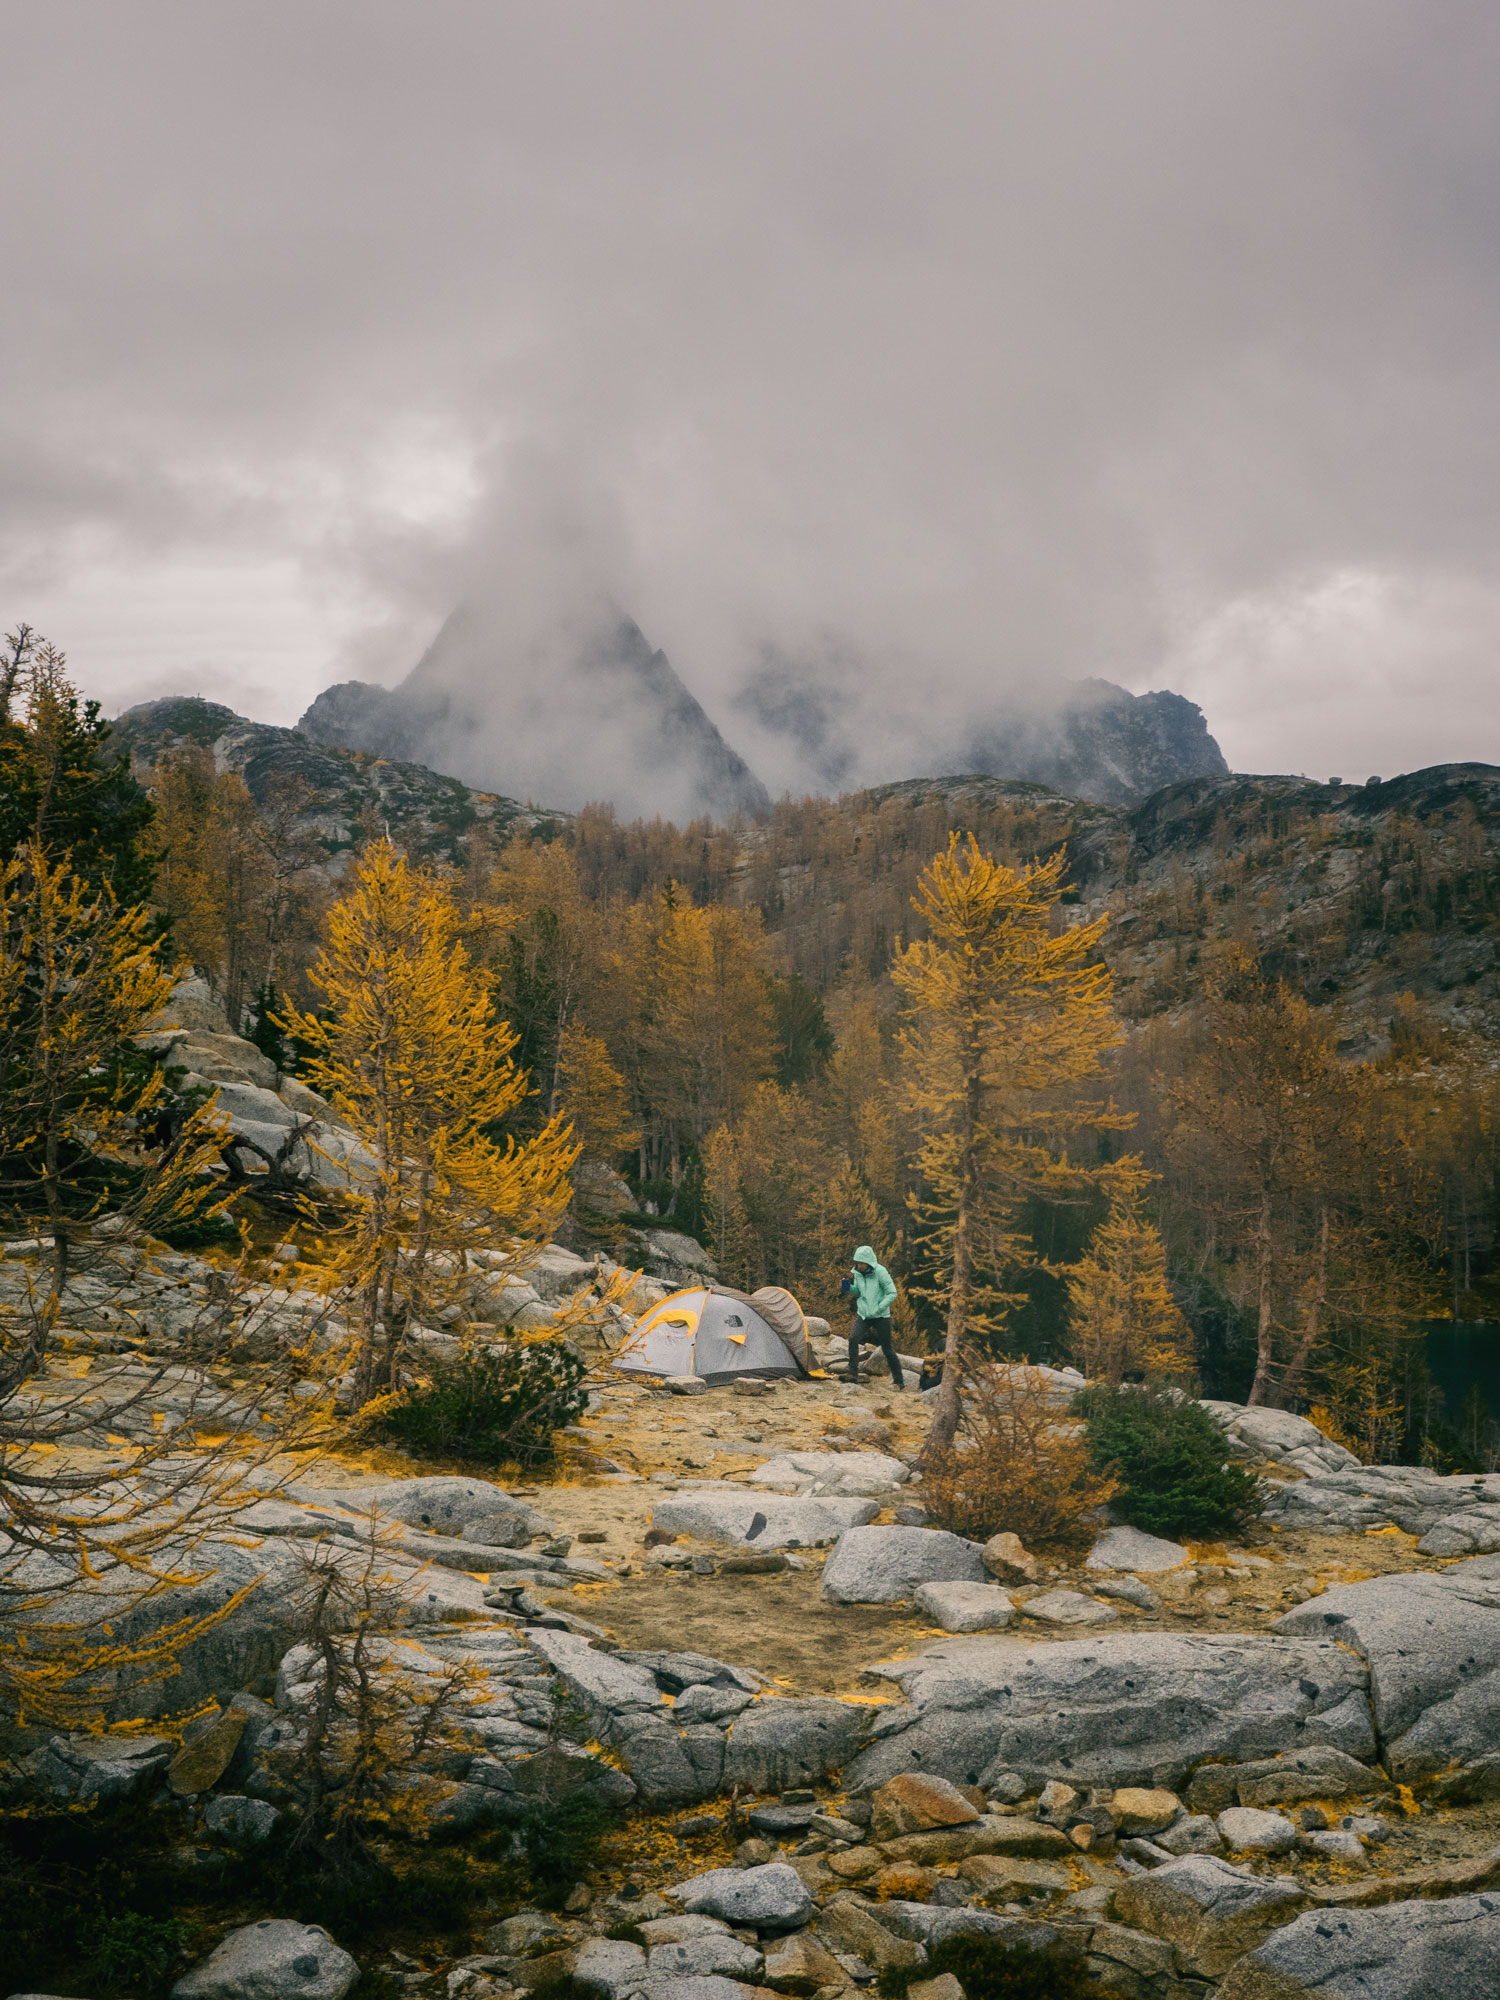 2015-10-18-HADLEY-ENCHANTMENTS-TENT-AND-LARCHES.jpg